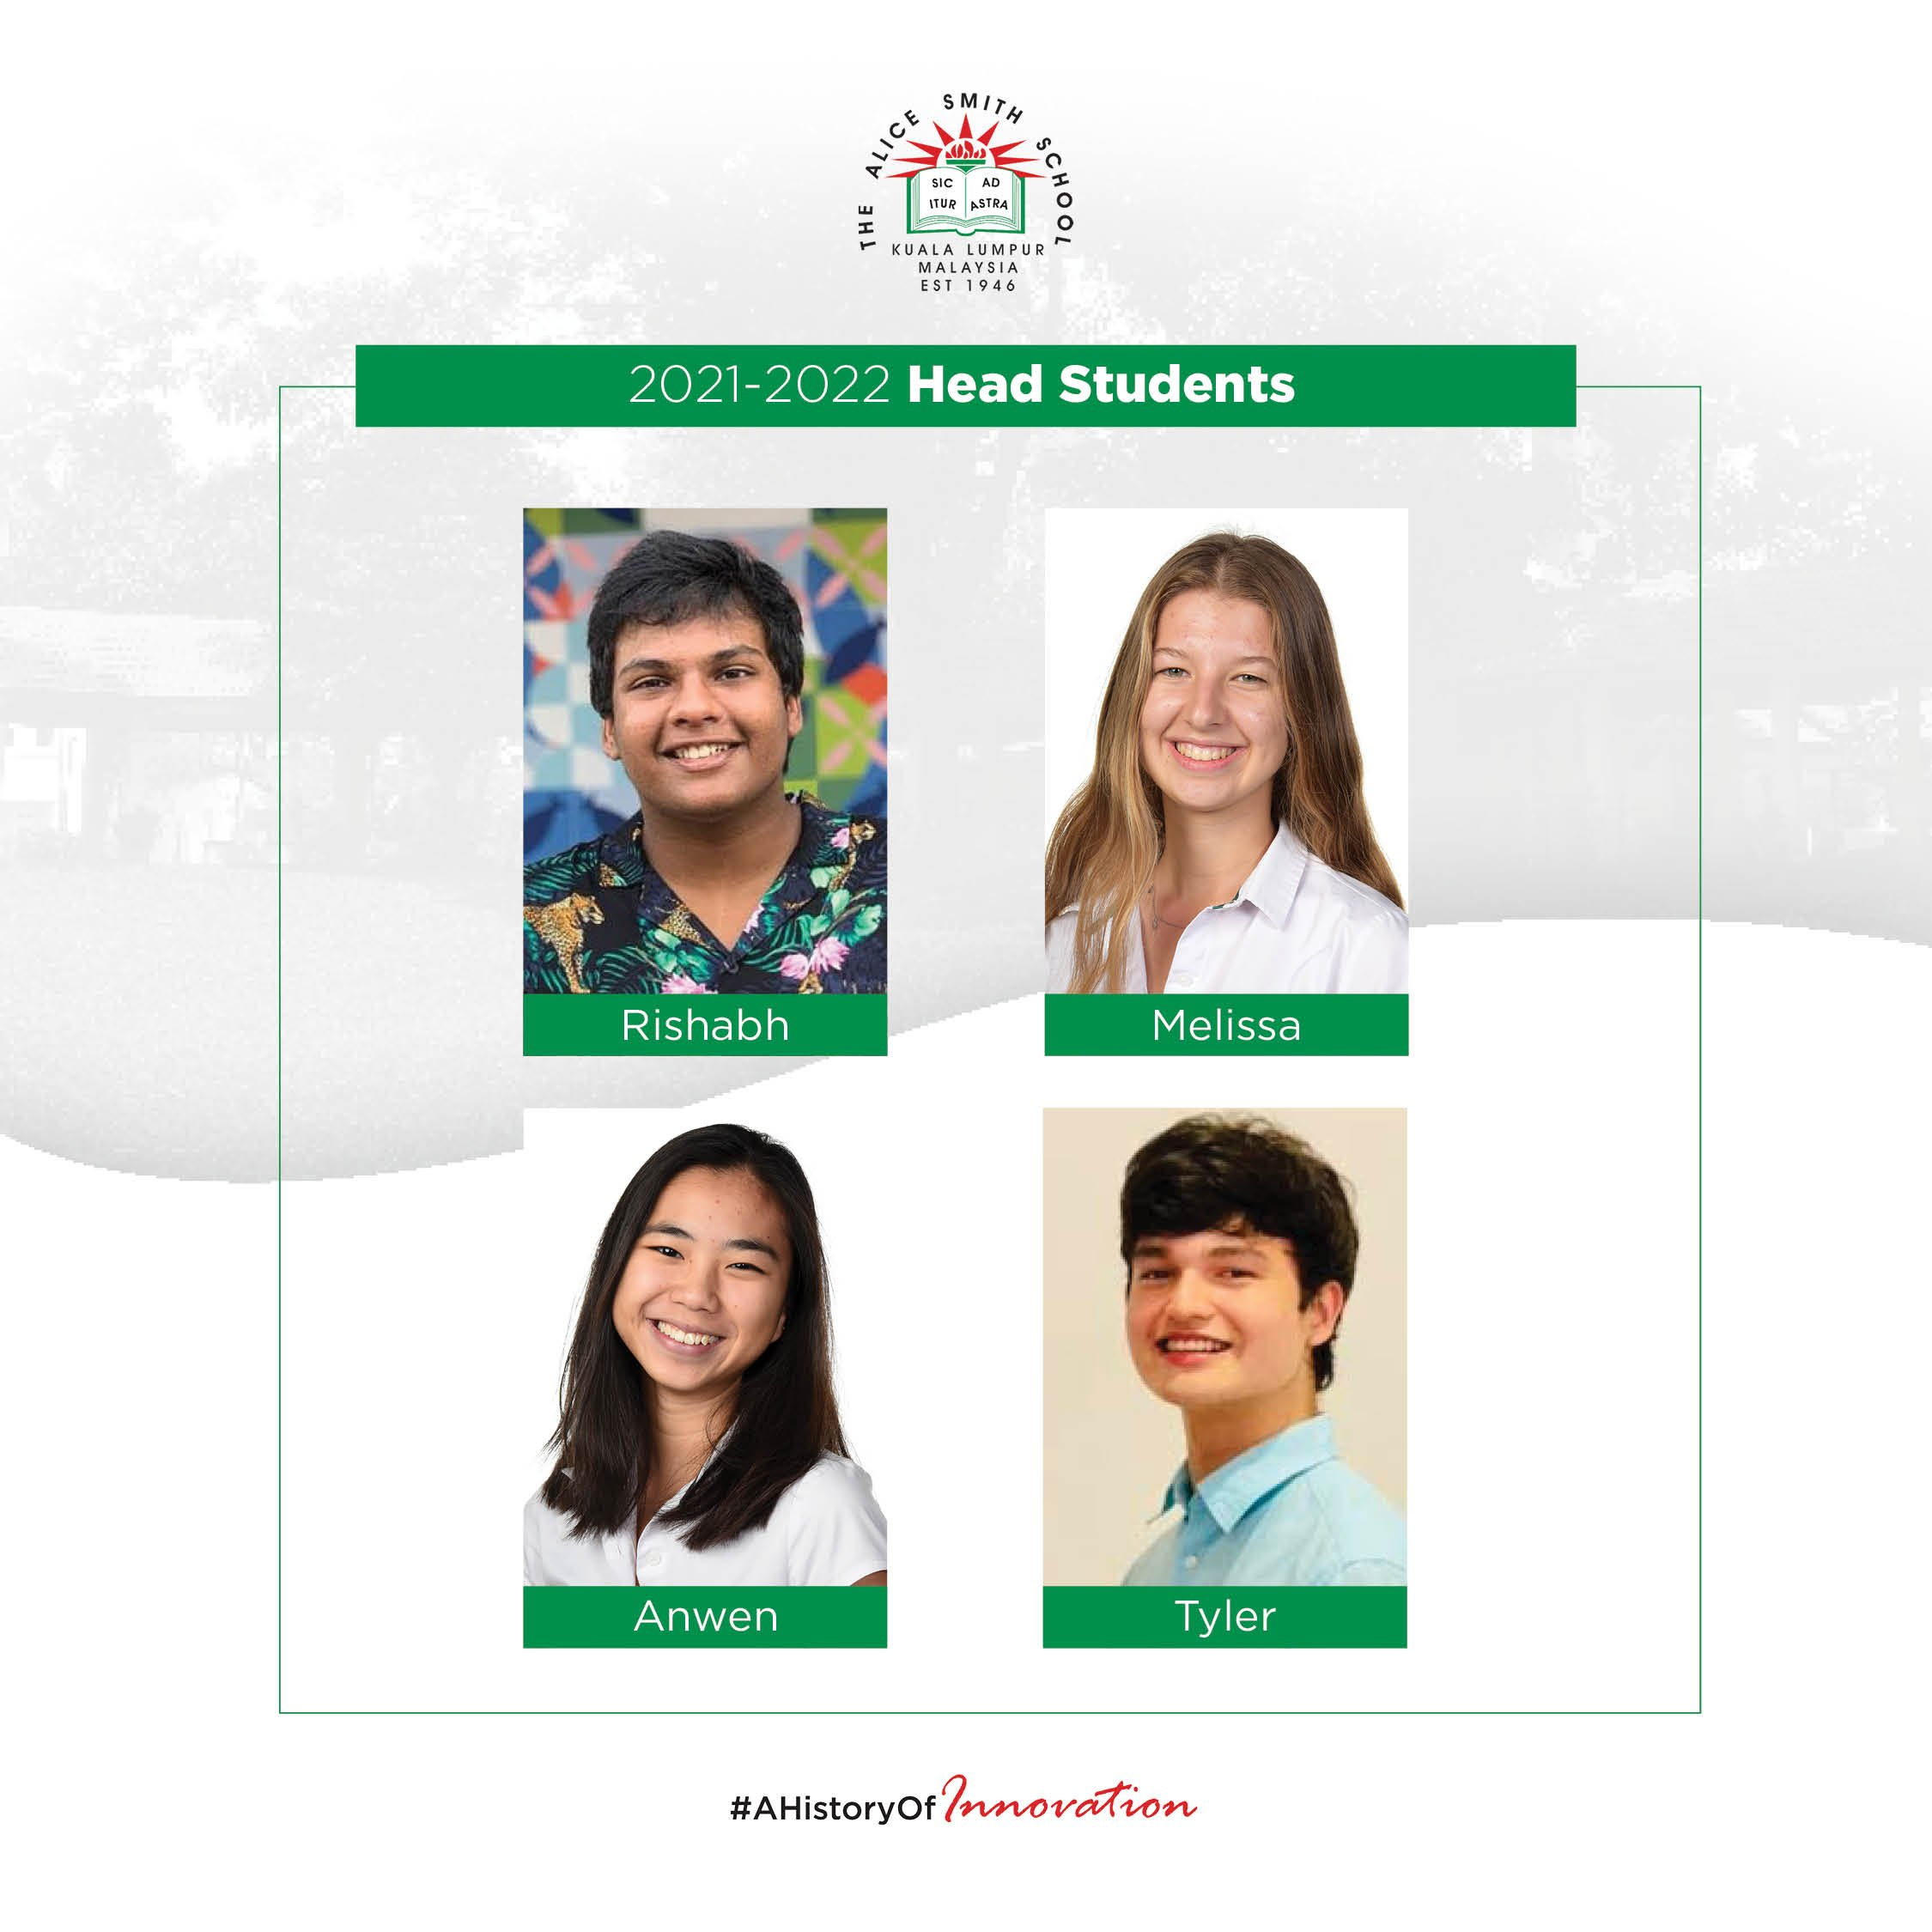 HeadStudents_2021-22